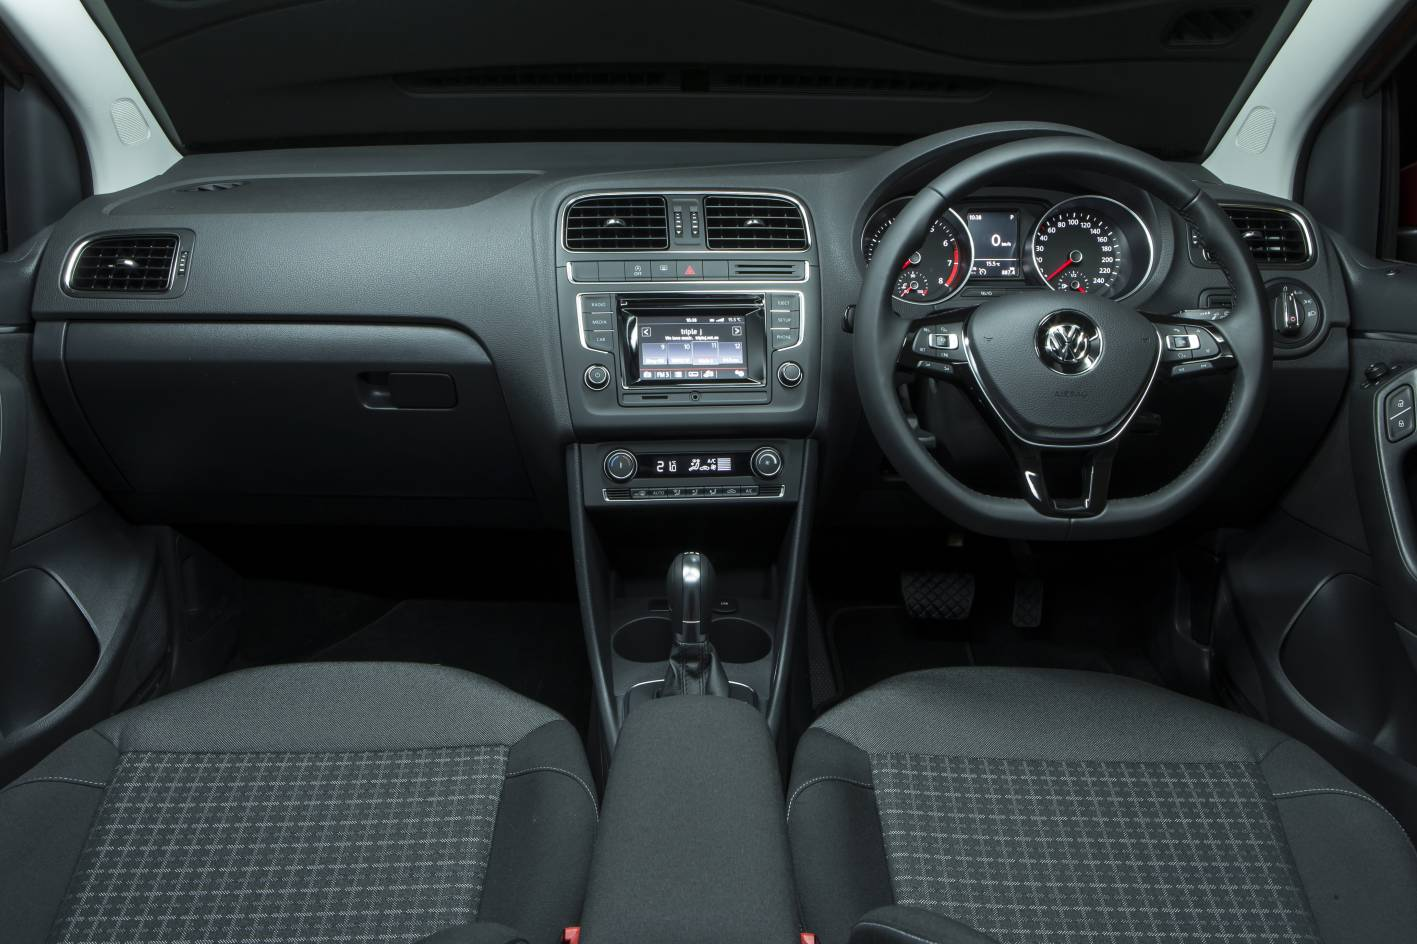 vw polo sedan 2015 car interior design. Black Bedroom Furniture Sets. Home Design Ideas